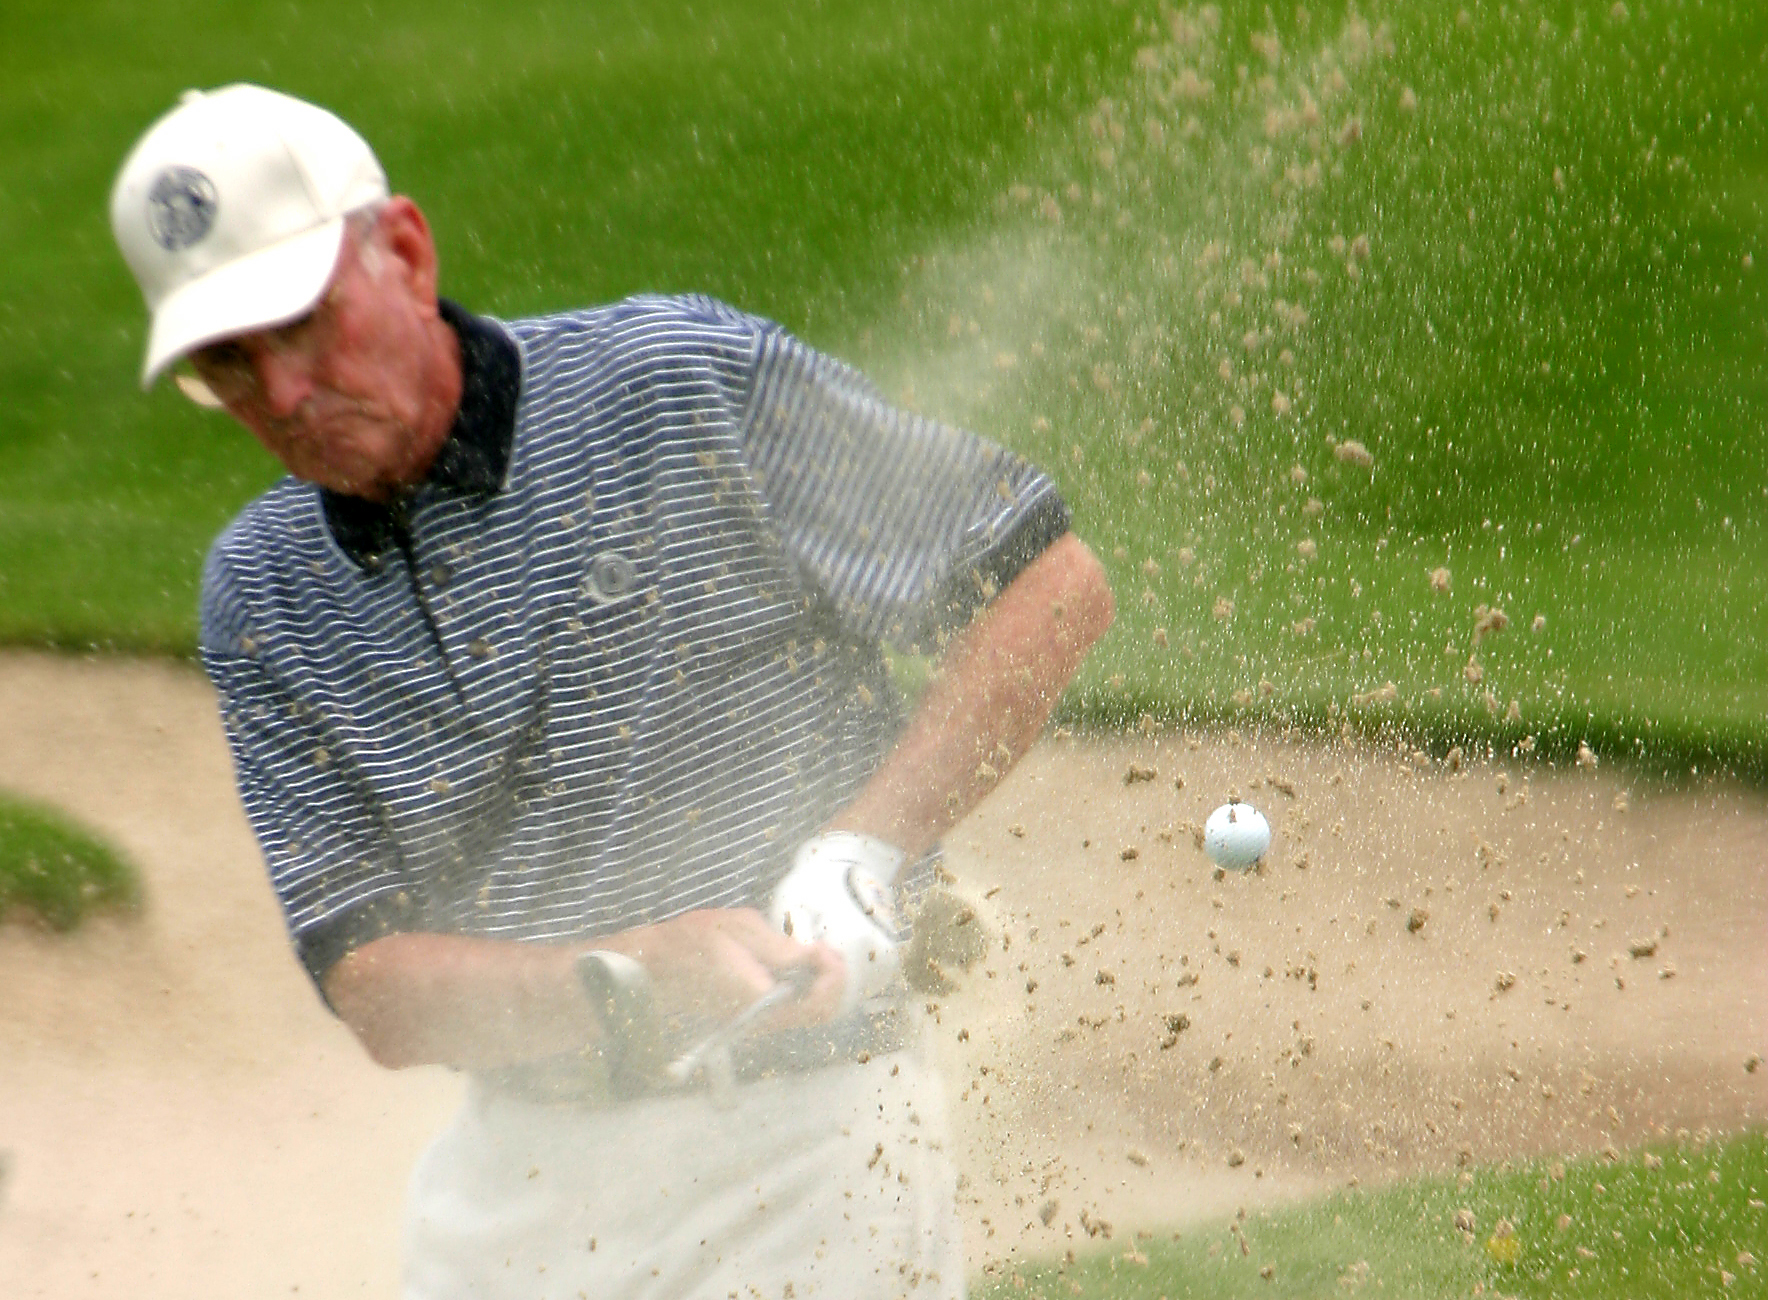 Arlen Peacock gets out of a sand trap on the eight hole of the Utah State Amateur golf tournament at the Jeremy Ranch golf course in Park City. Ryan Long/Deseret Morning News. (Submission date: 07/07/2004)